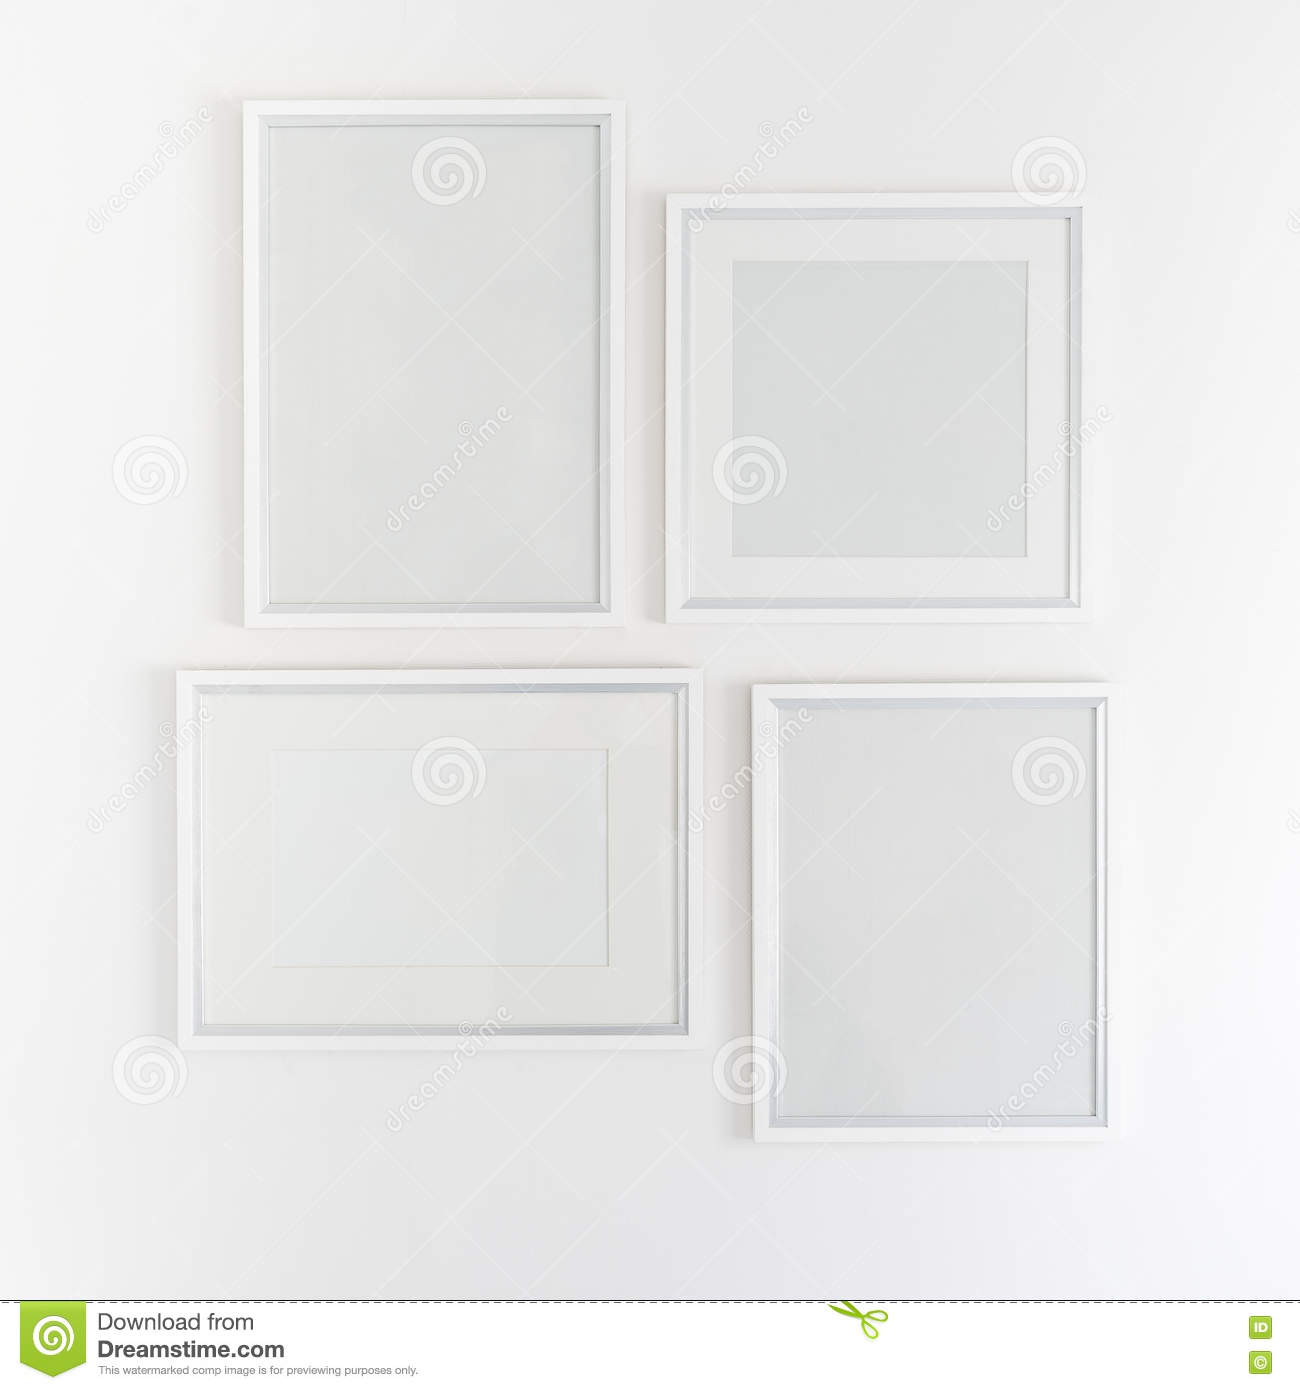 White Blank Picture Frames Hanging On White Stock Image - Image of ...